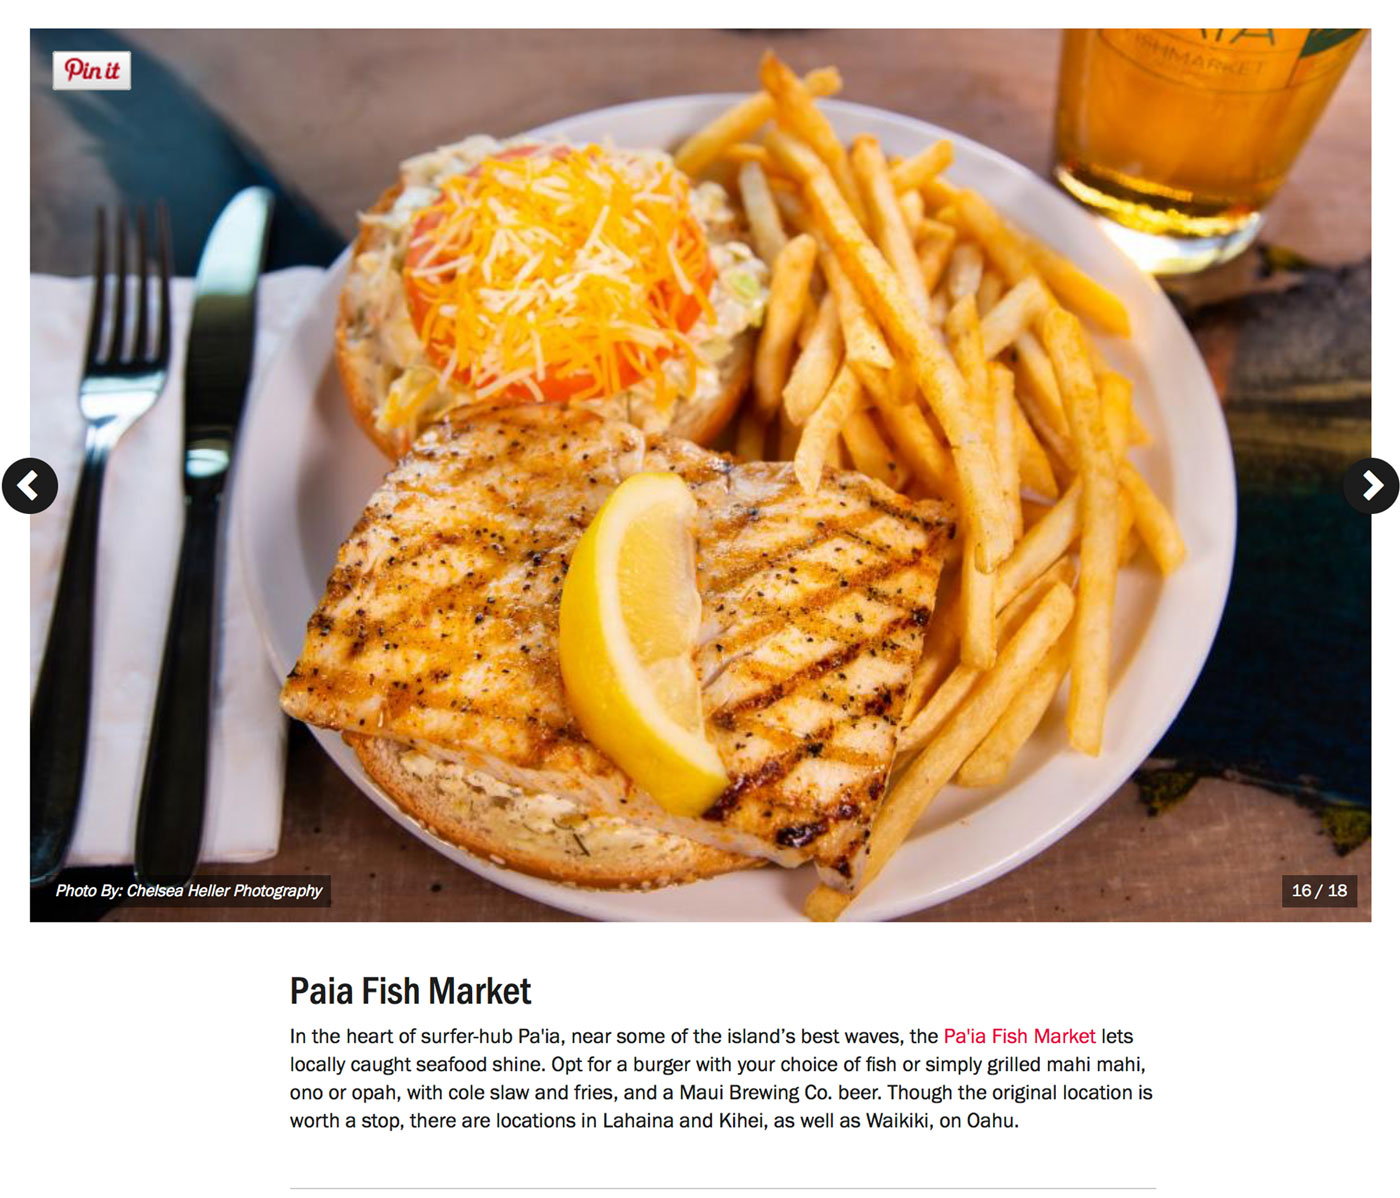 "Screenshot from Food Network's Guide to:<br><a href=""https://www.foodnetwork.com/restaurants/photos/restaurant-guide-maui"" target=""_blank"" rel=""noopener noreferrer"">""The Best Restaurants on Maui""</a> - Paia Fish Market.</br>"